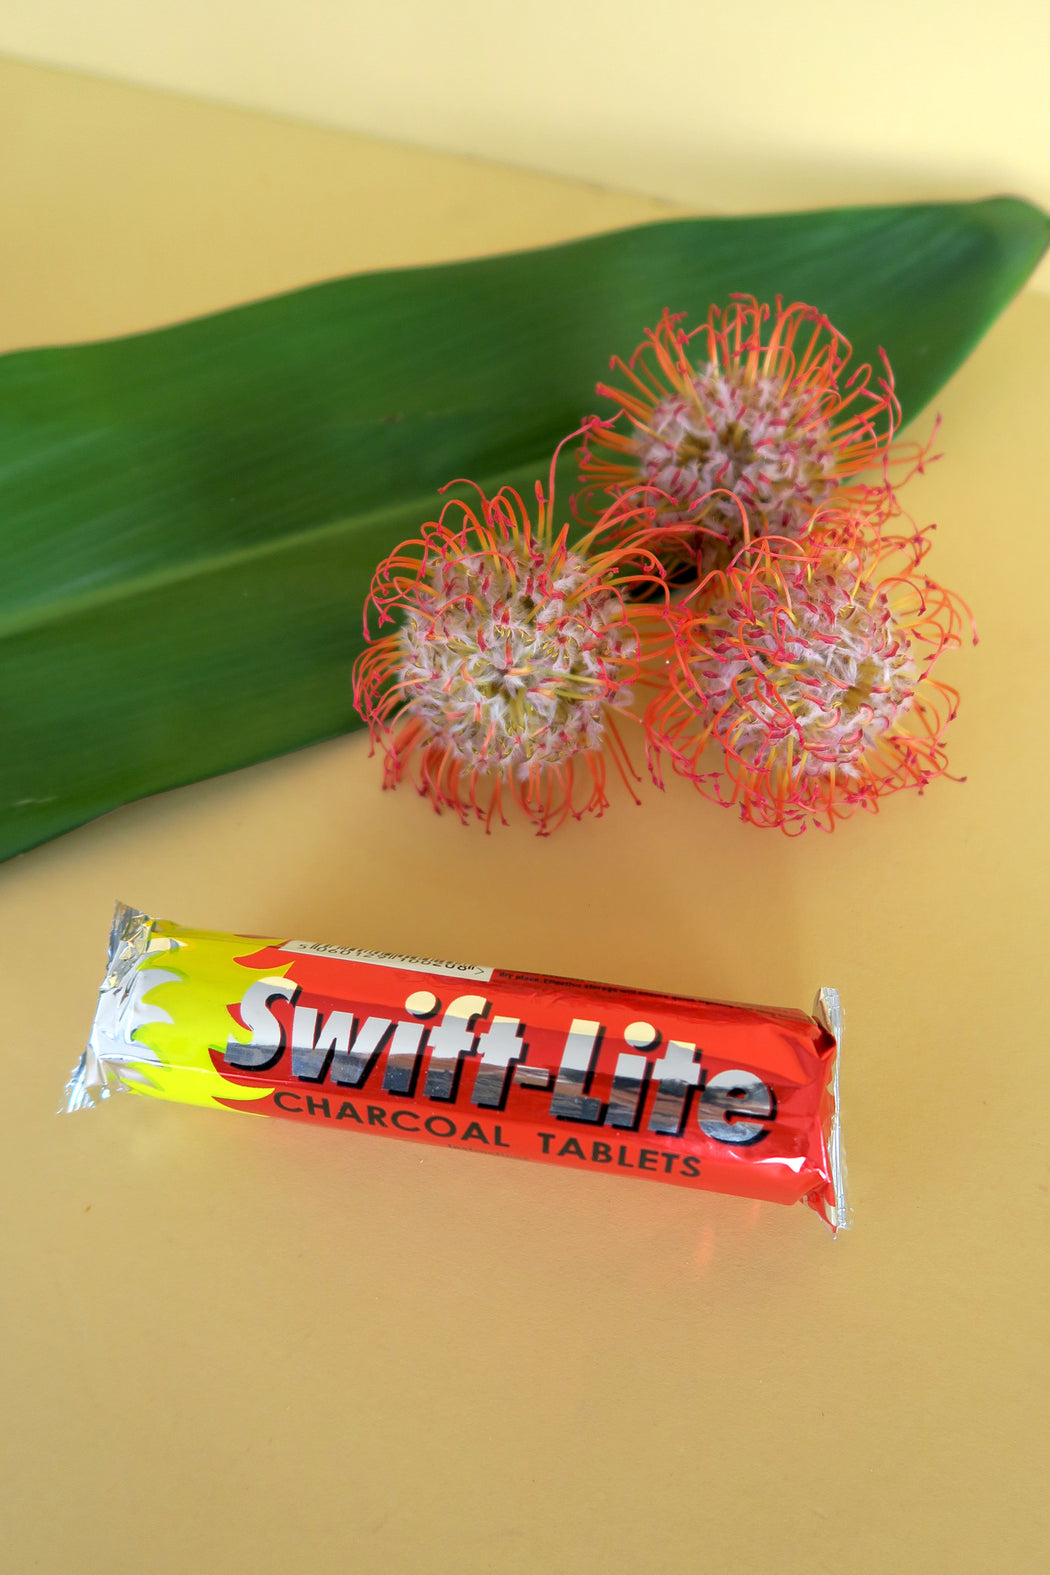 Swift-Lite Charcoal Tablets